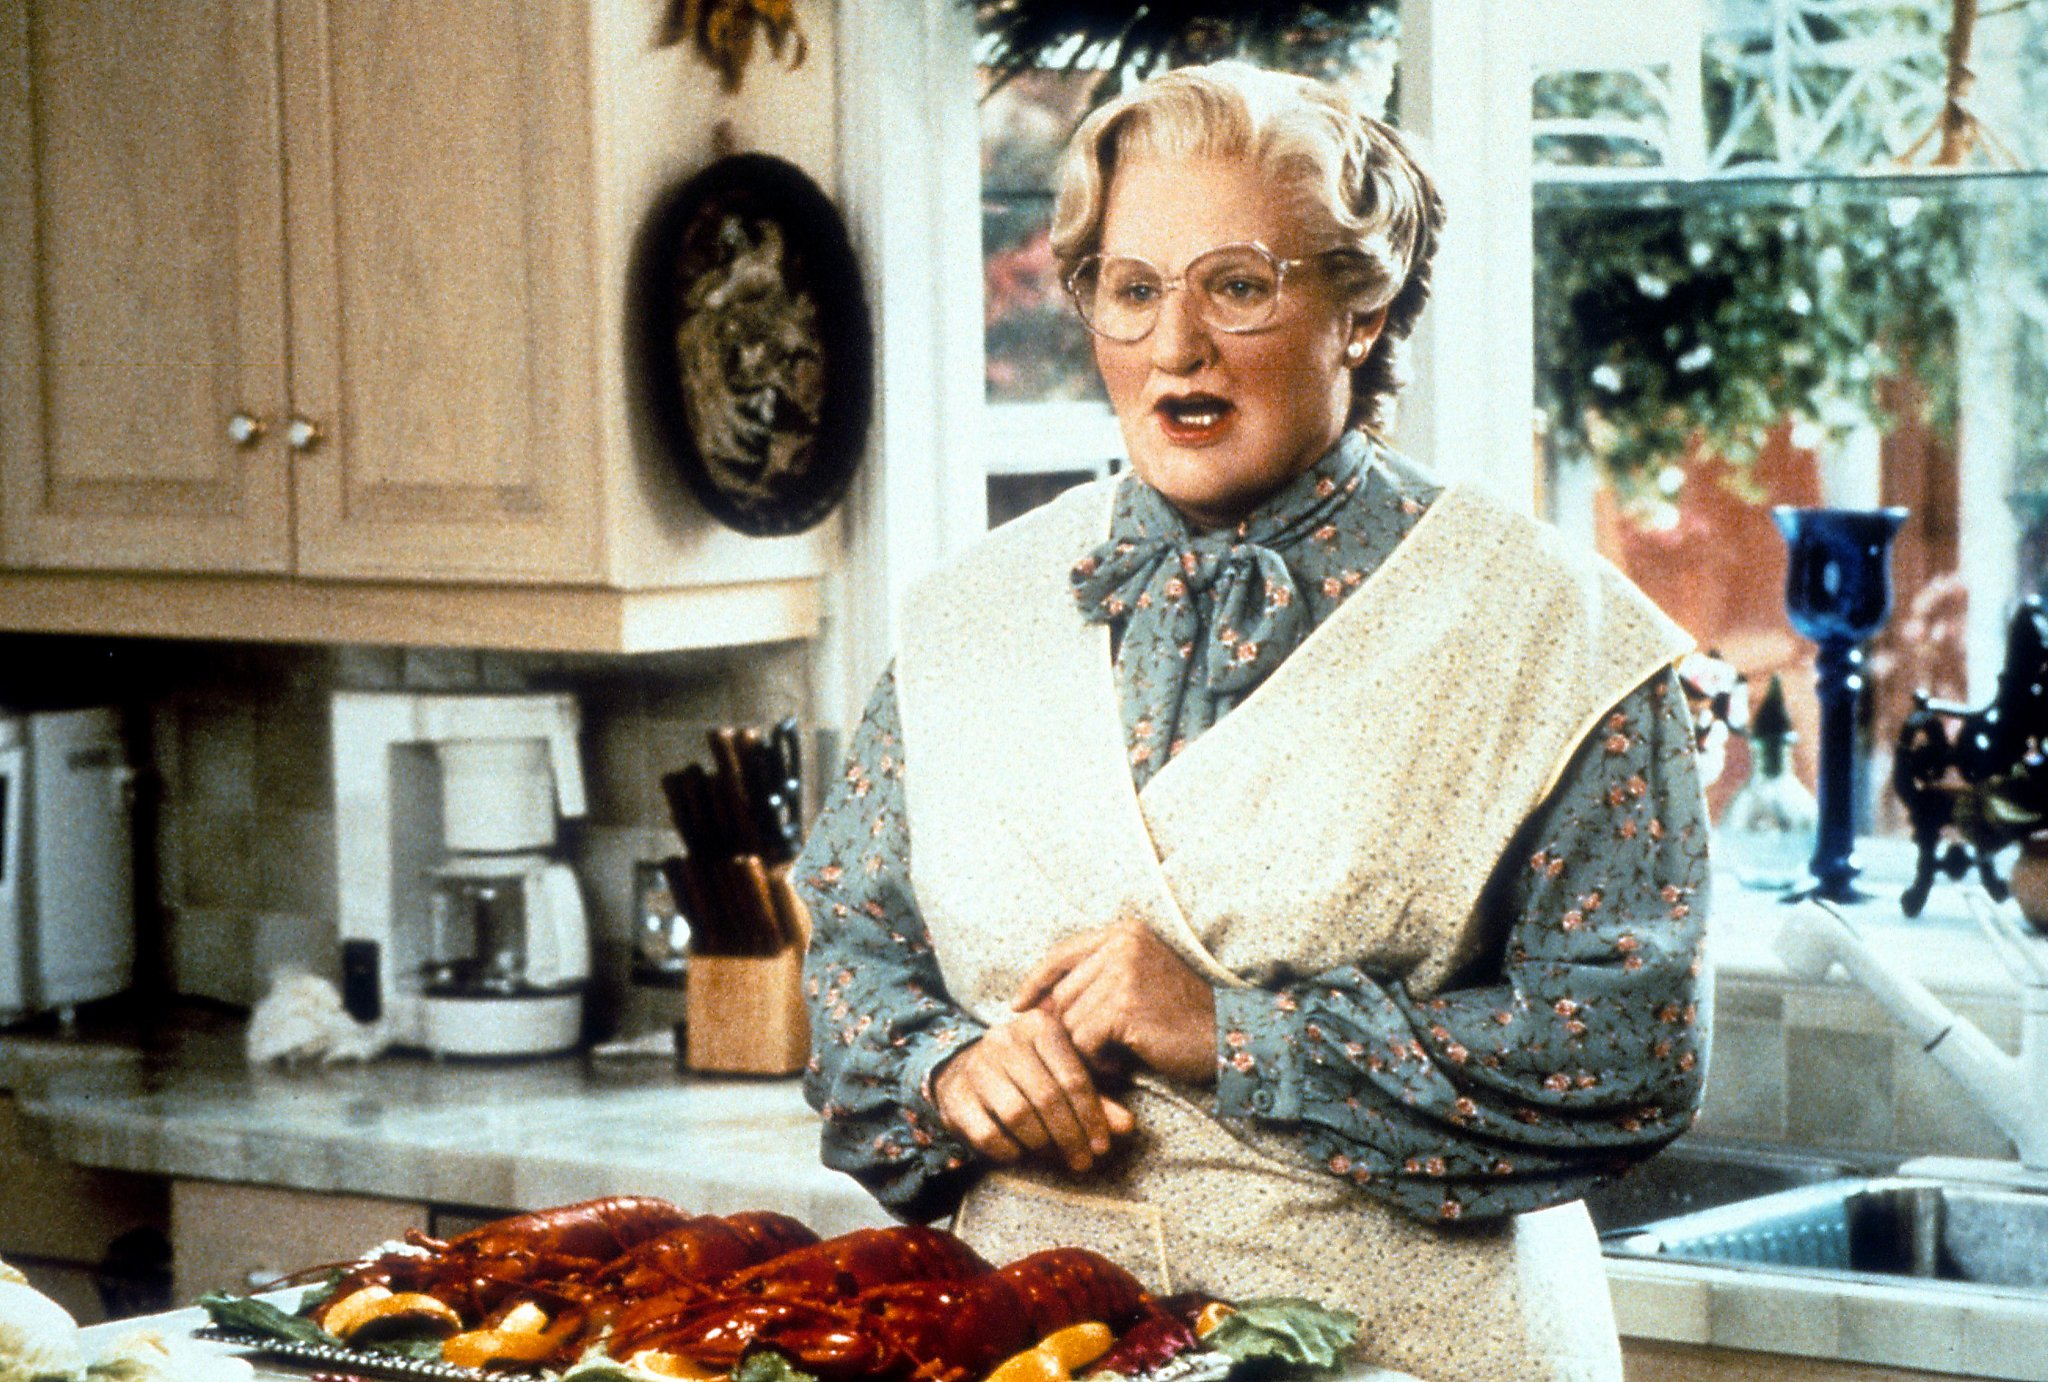 mrs doubtfire Robin williams in the kitchen in a scene from the film mrs doubtfire photo: archive photos, getty images i finally said this out loud the other day, in the middle of a podcast recording as the words emerged, there was already the upward vocal tilt of an apology, followed by some argumentative.